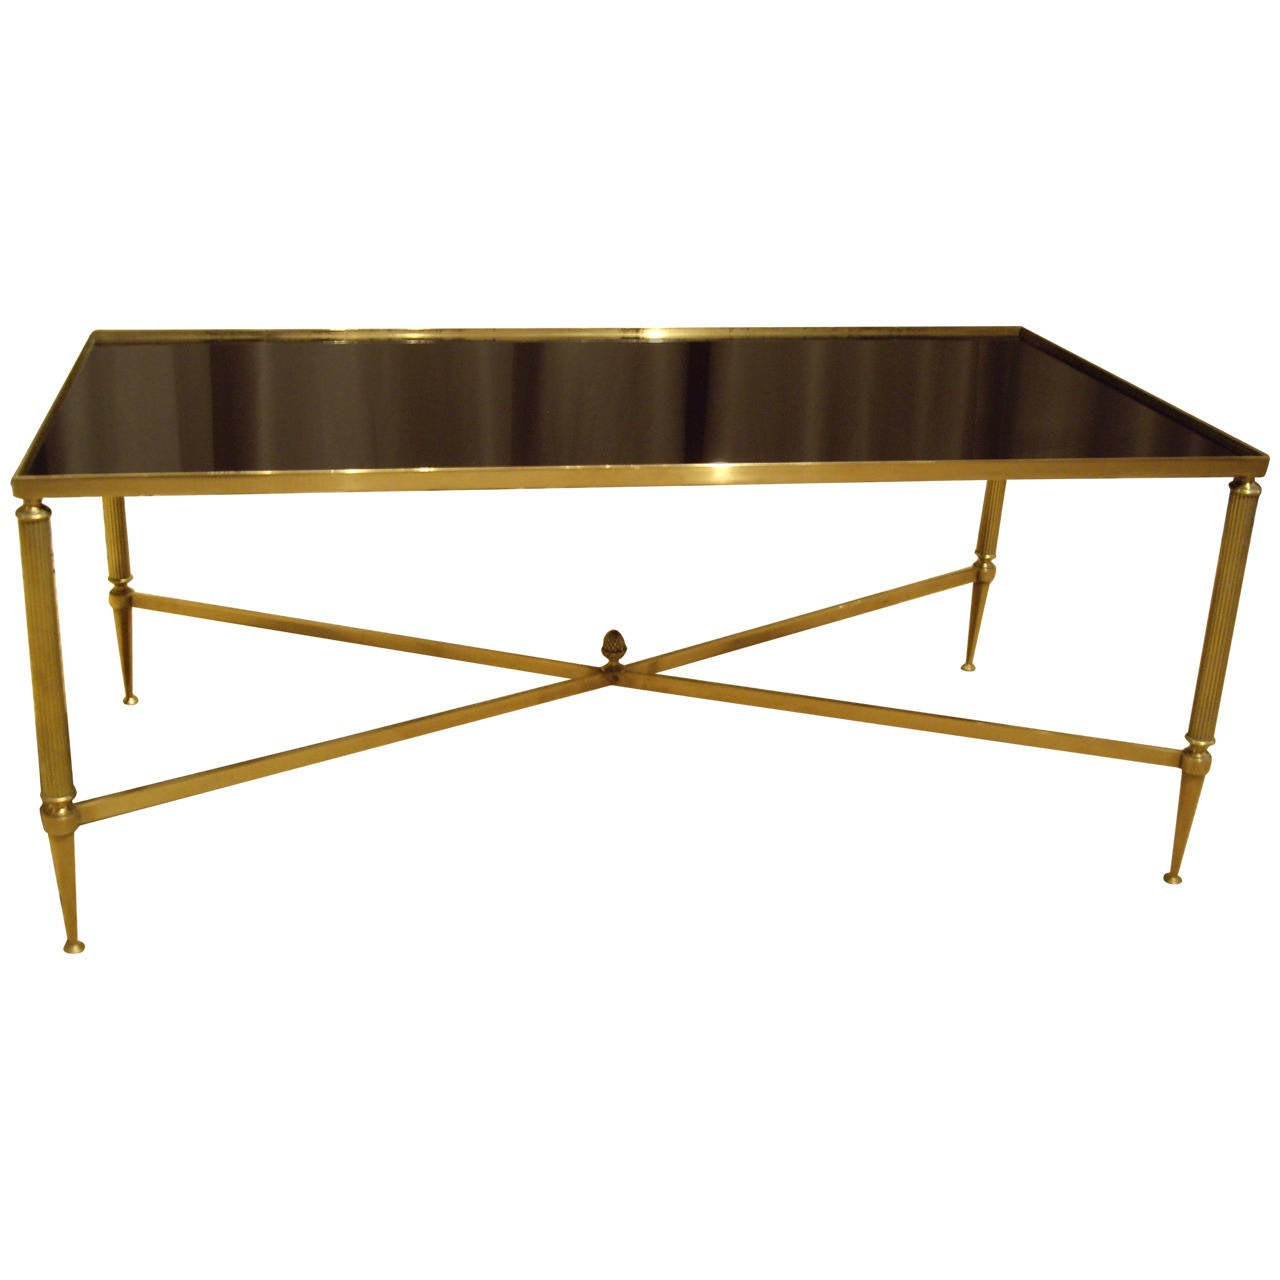 Vintage French Brass And Glass Coffee Table At 1stdibs